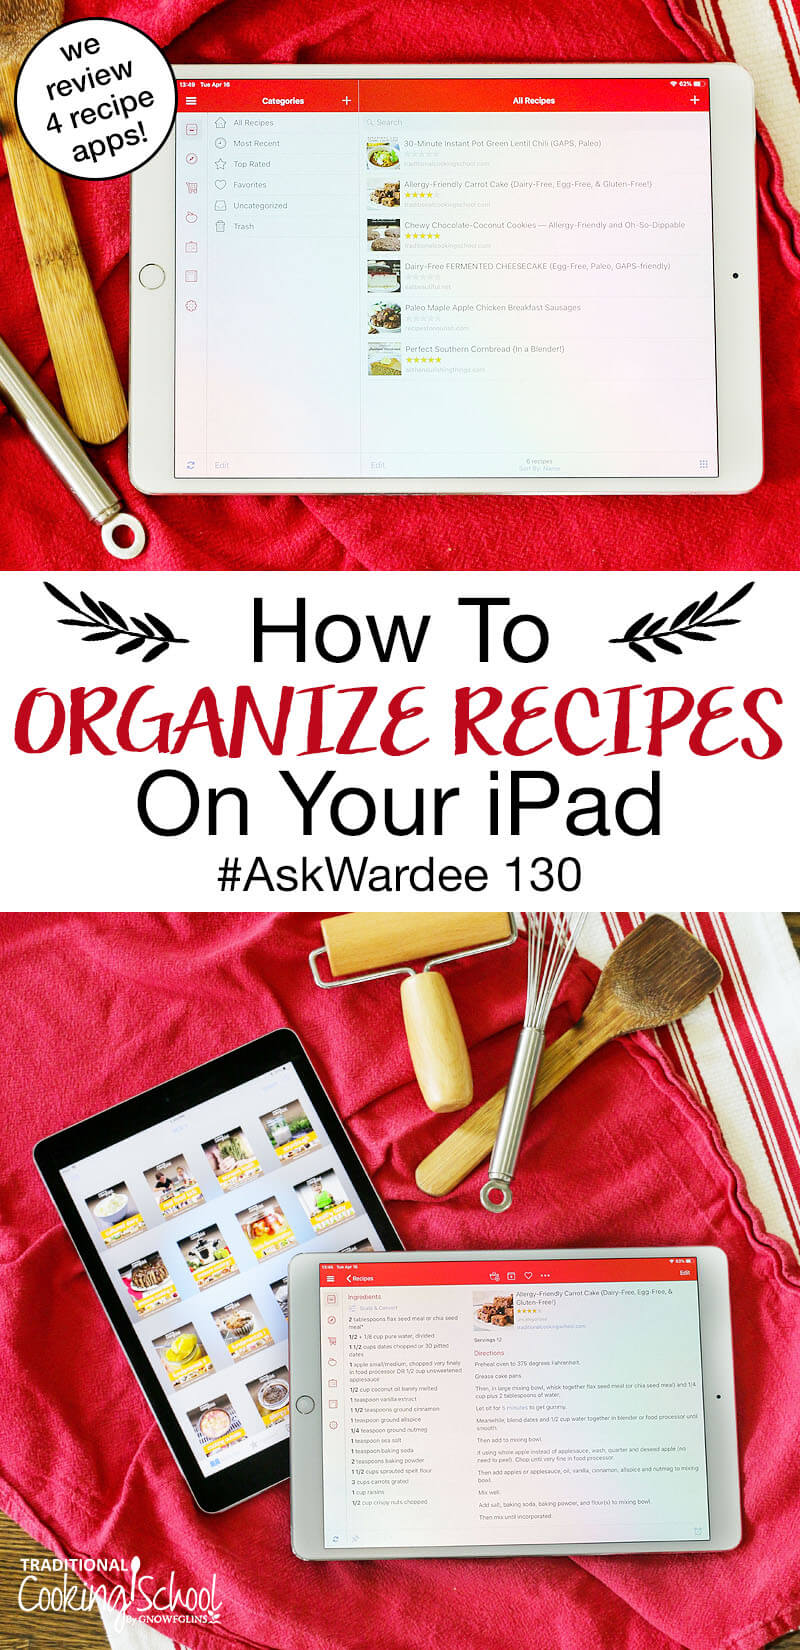 "photo collage of two iPads with eBooks and recipe apps pulled up on the screen next to three assorted kitchen tools, with text overlay: ""How To Organize Recipes On Your iPad #AskWardee 130 (we review 4 recipe apps!)"""